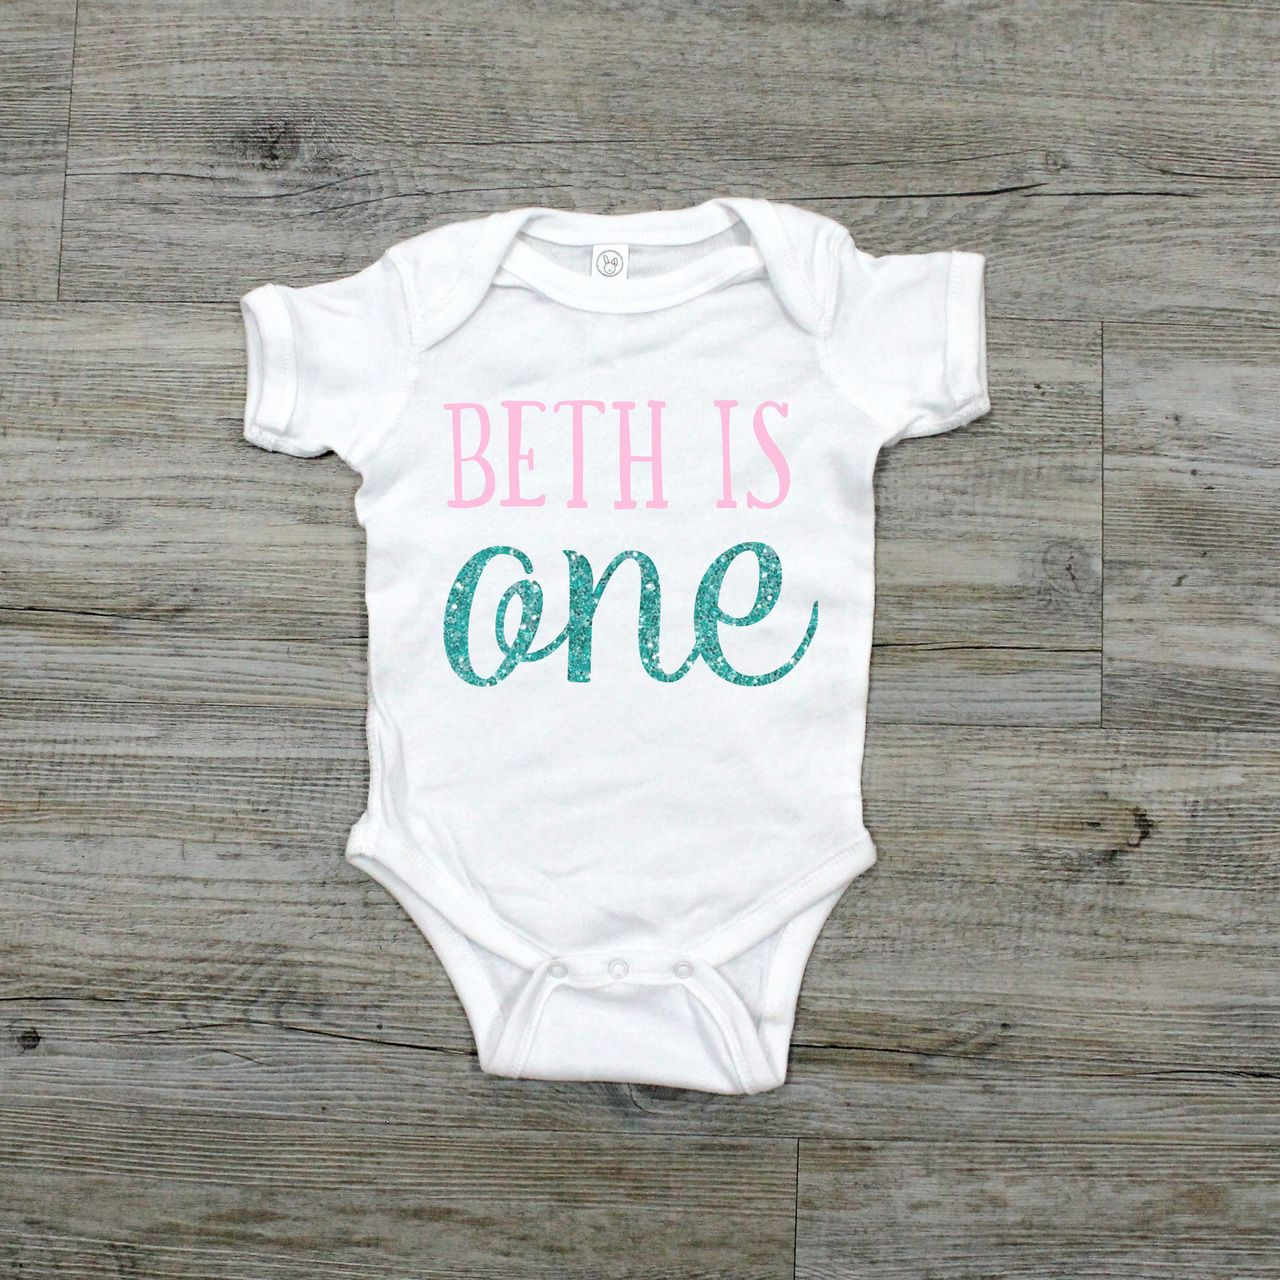 Give the perfect baby shower gift of our Monogrammed Baby Body Suit Jumper!  Shop Personalized Baby Apparel and Gifts on www.shopmemento.com.